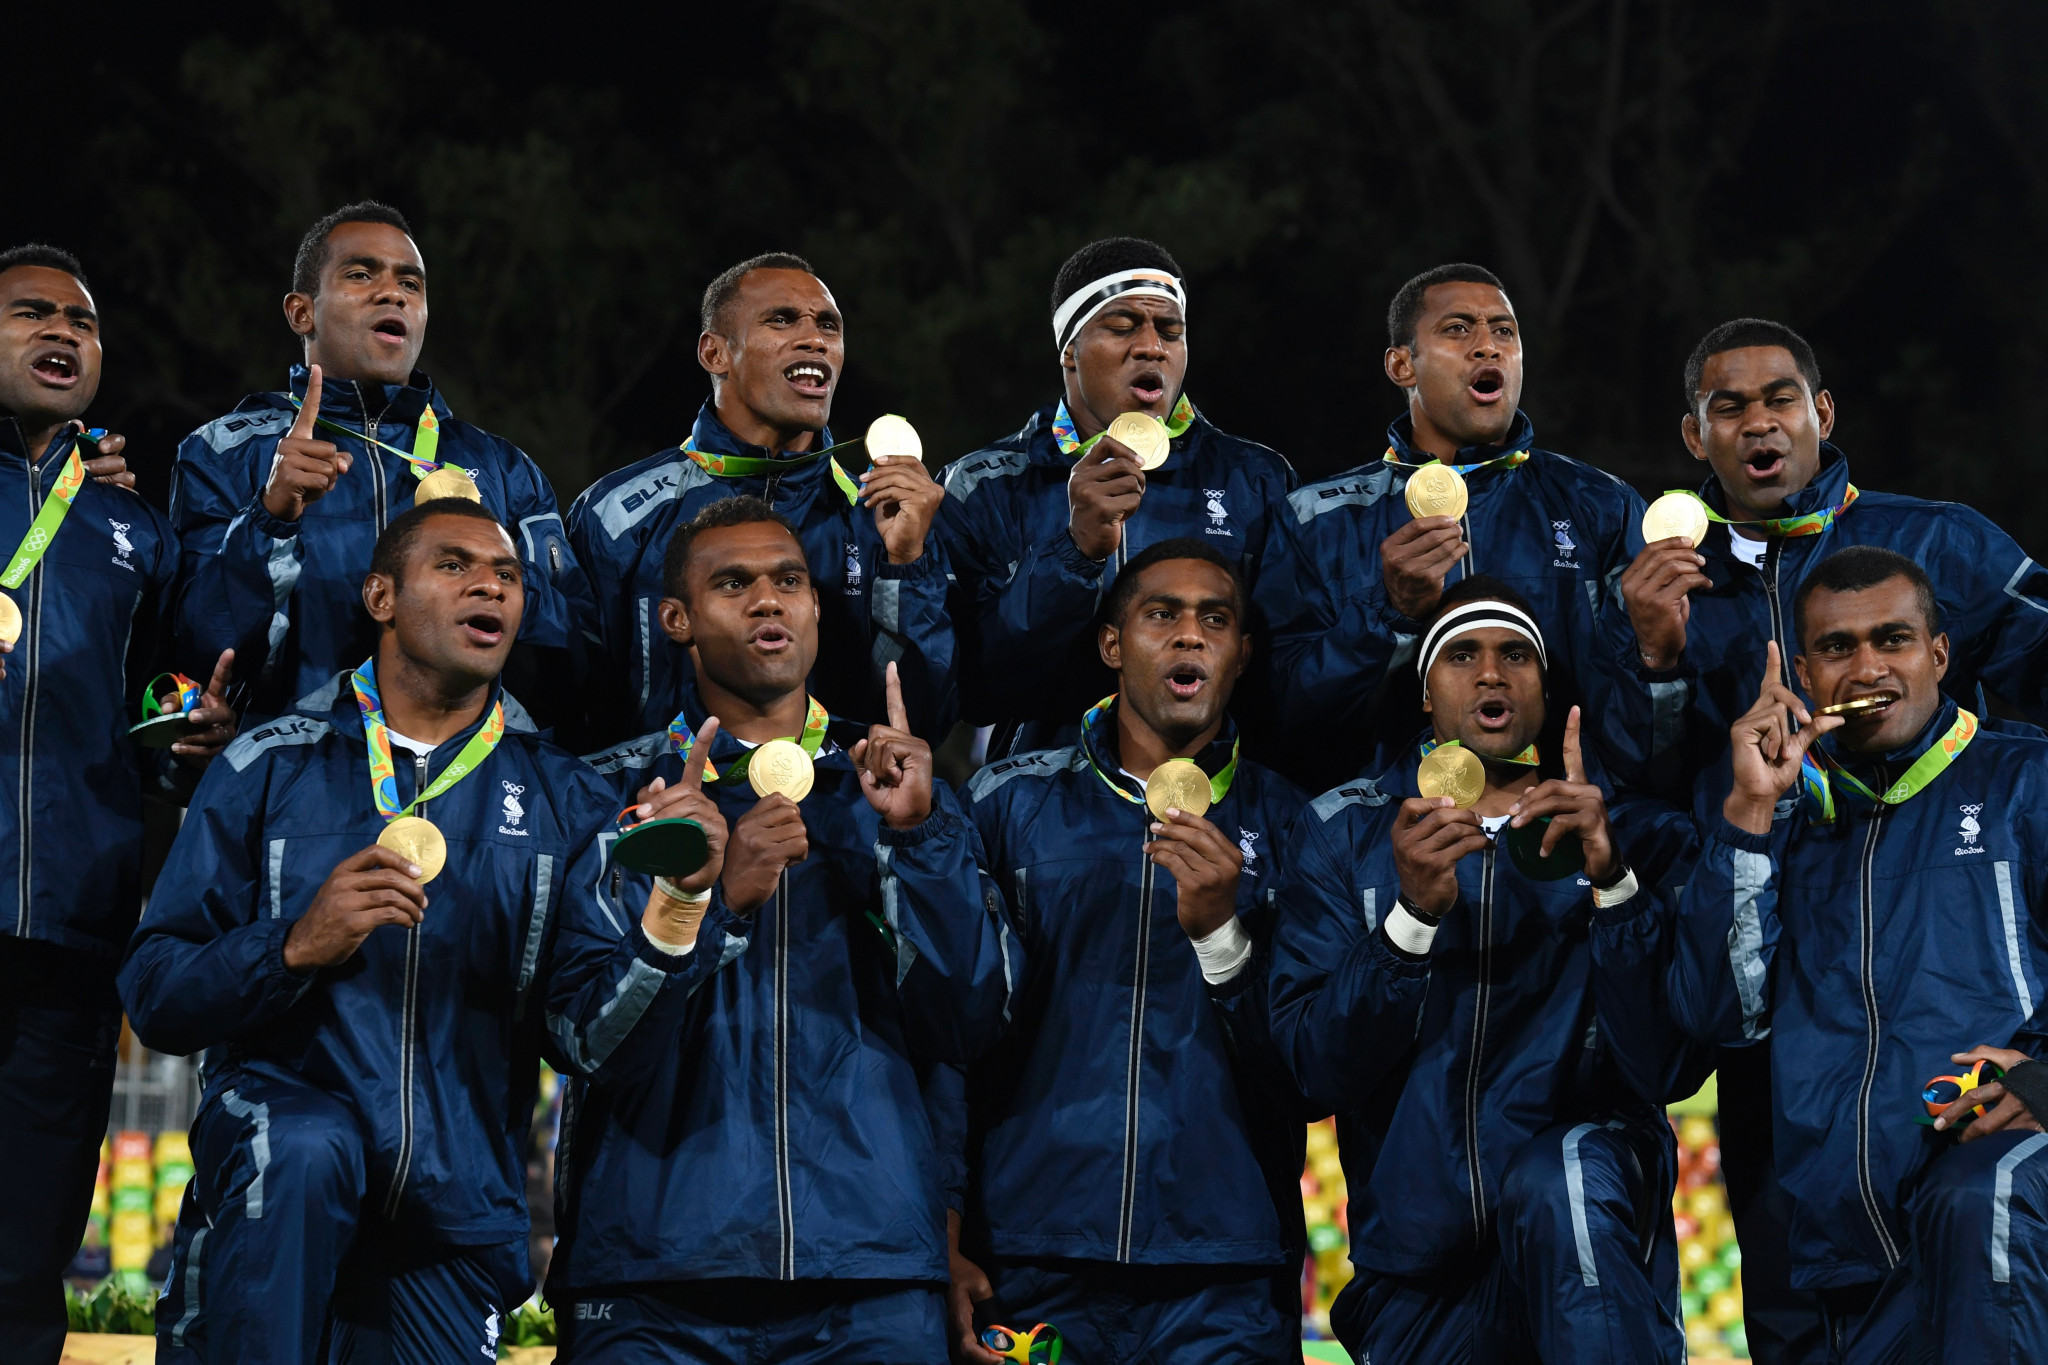 Fiji announce preliminary rugby sevens squad for Gold Coast 2018